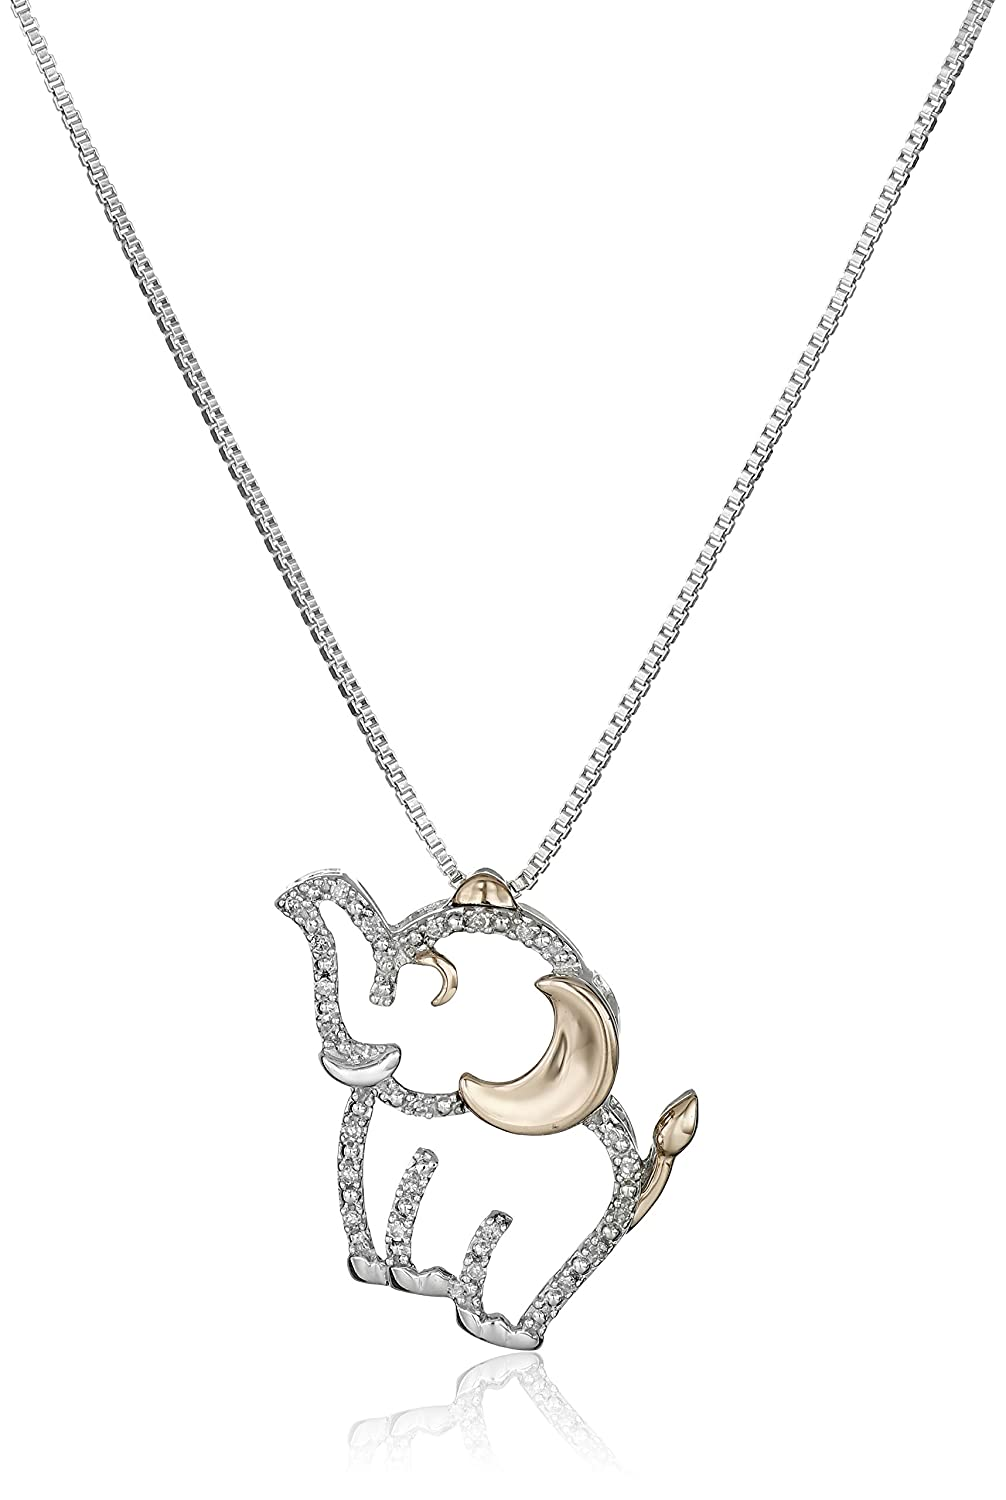 6971a96119048 Sterling Silver and 14k Rose Gold Diamond Elephant Pendant Necklace